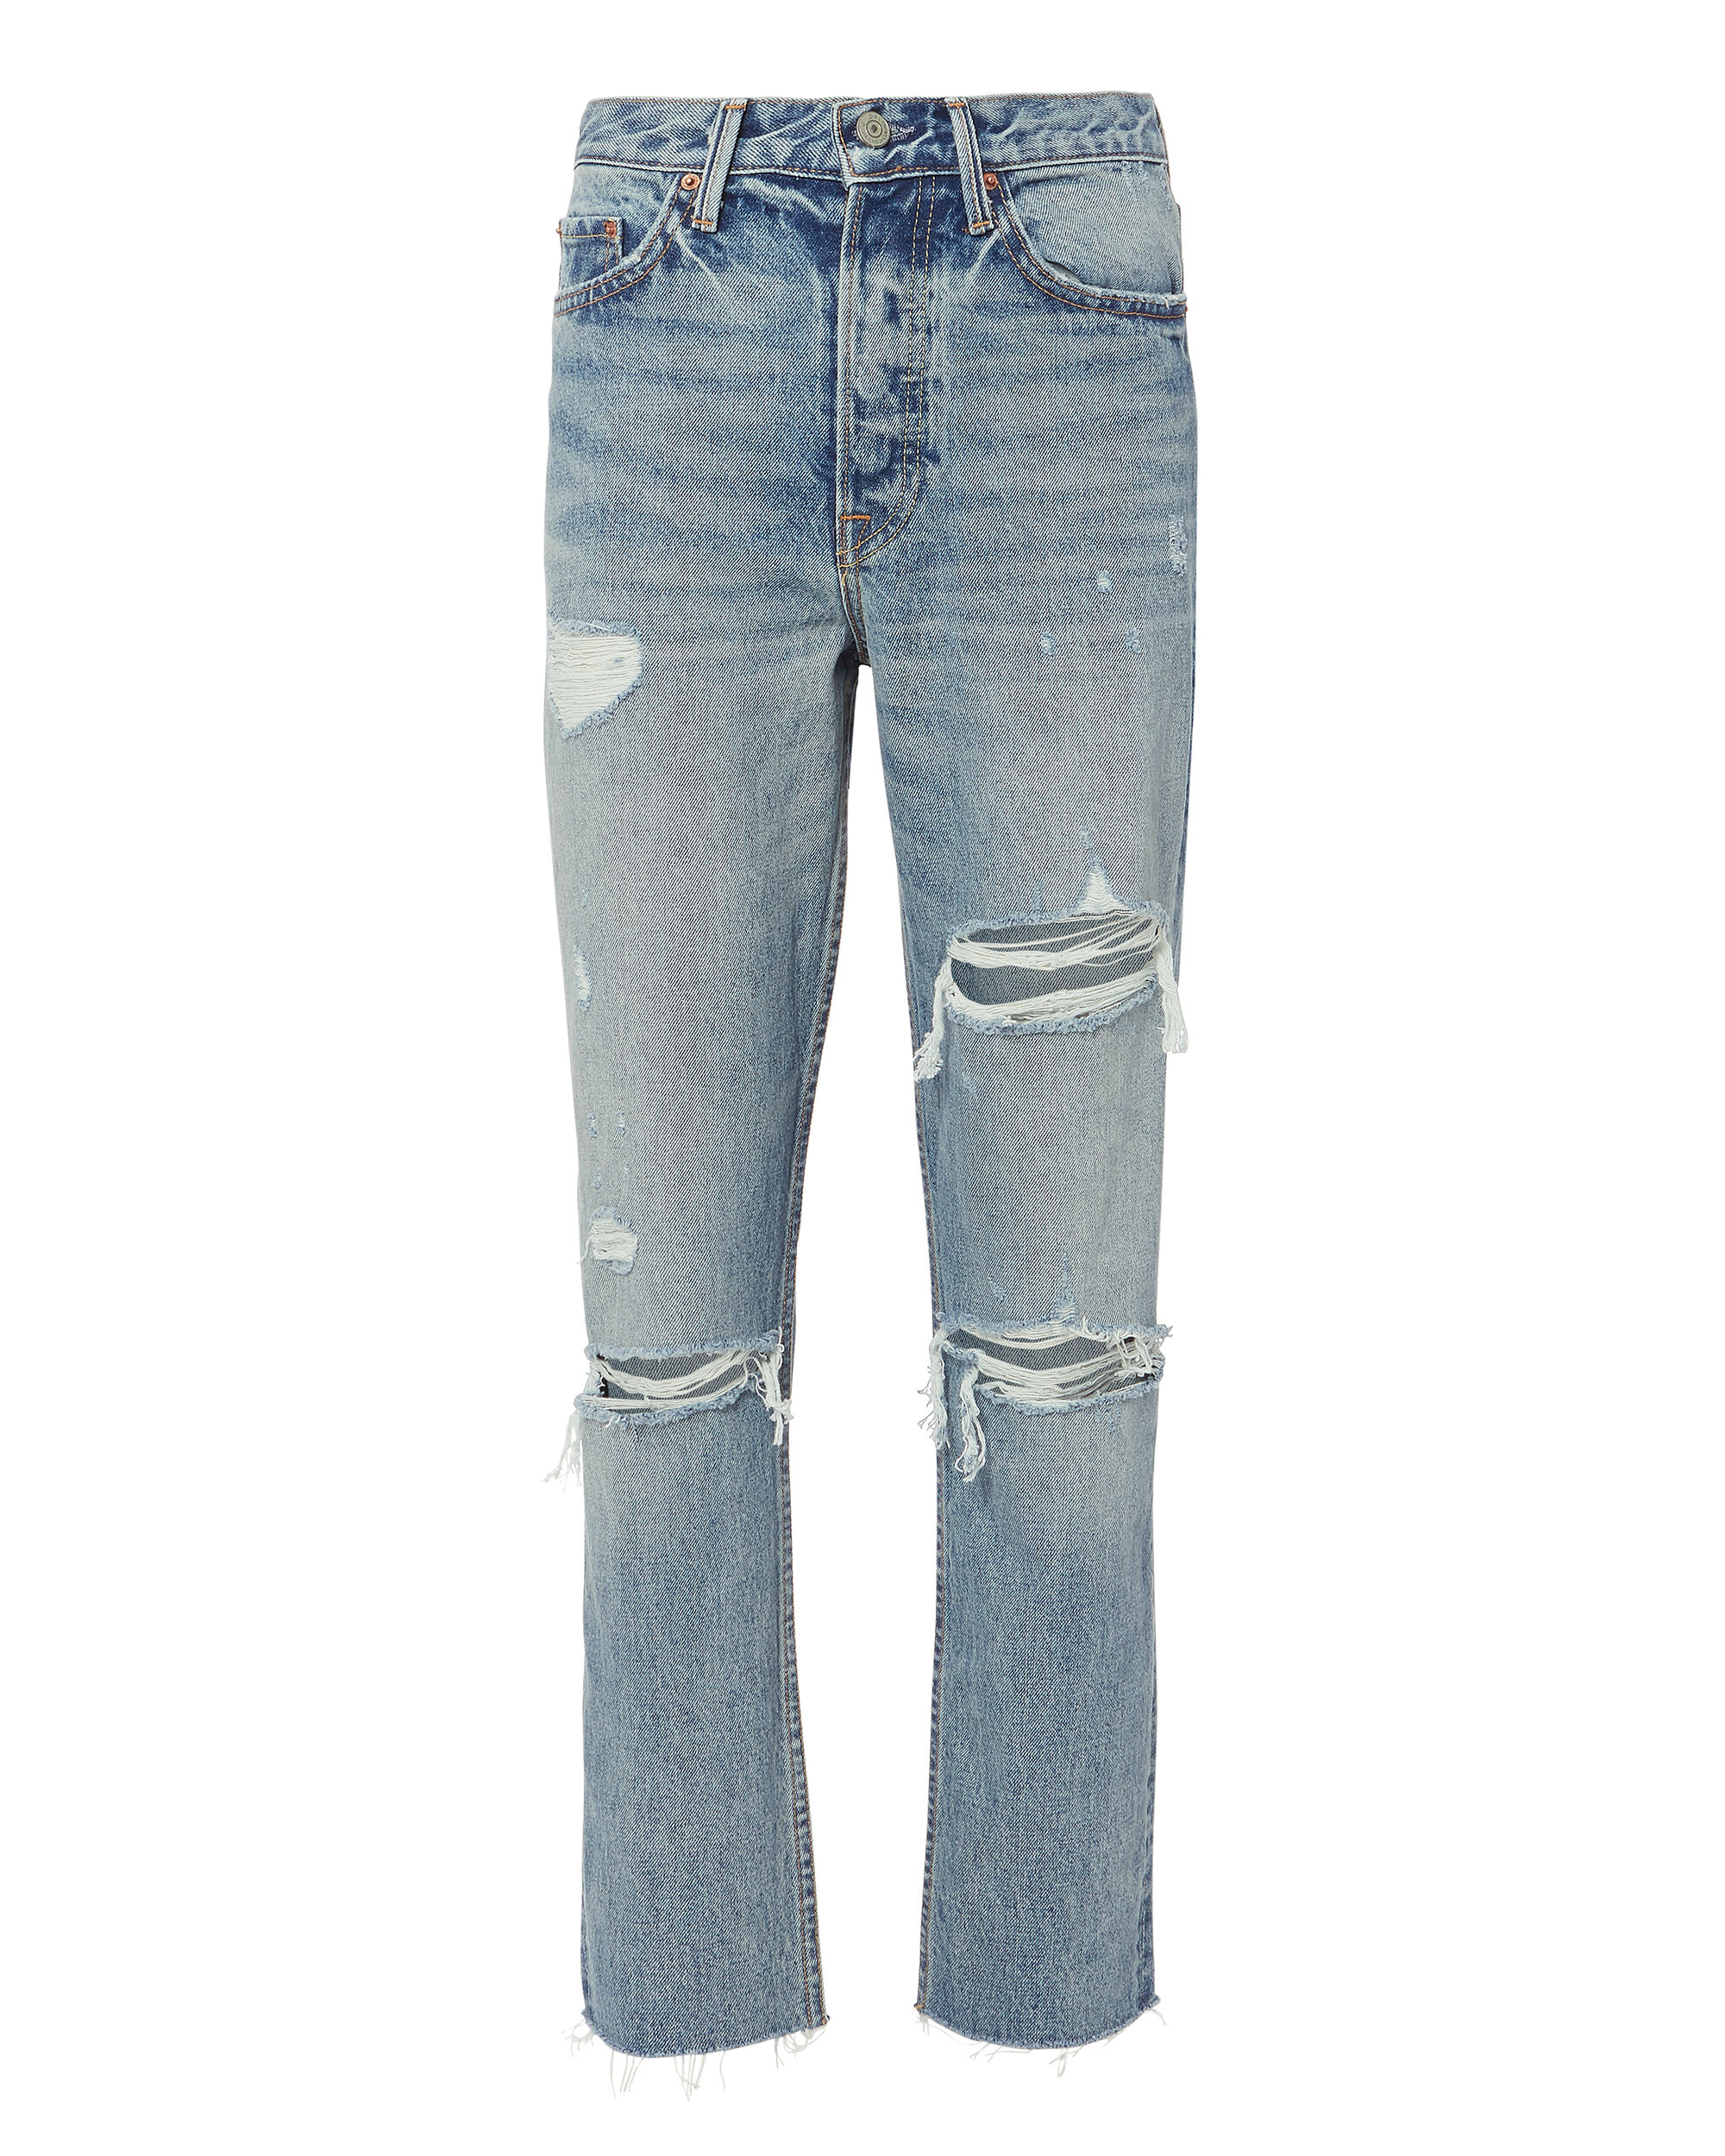 Karolina High-Rise Crop Jeans, DENIM, hi-res